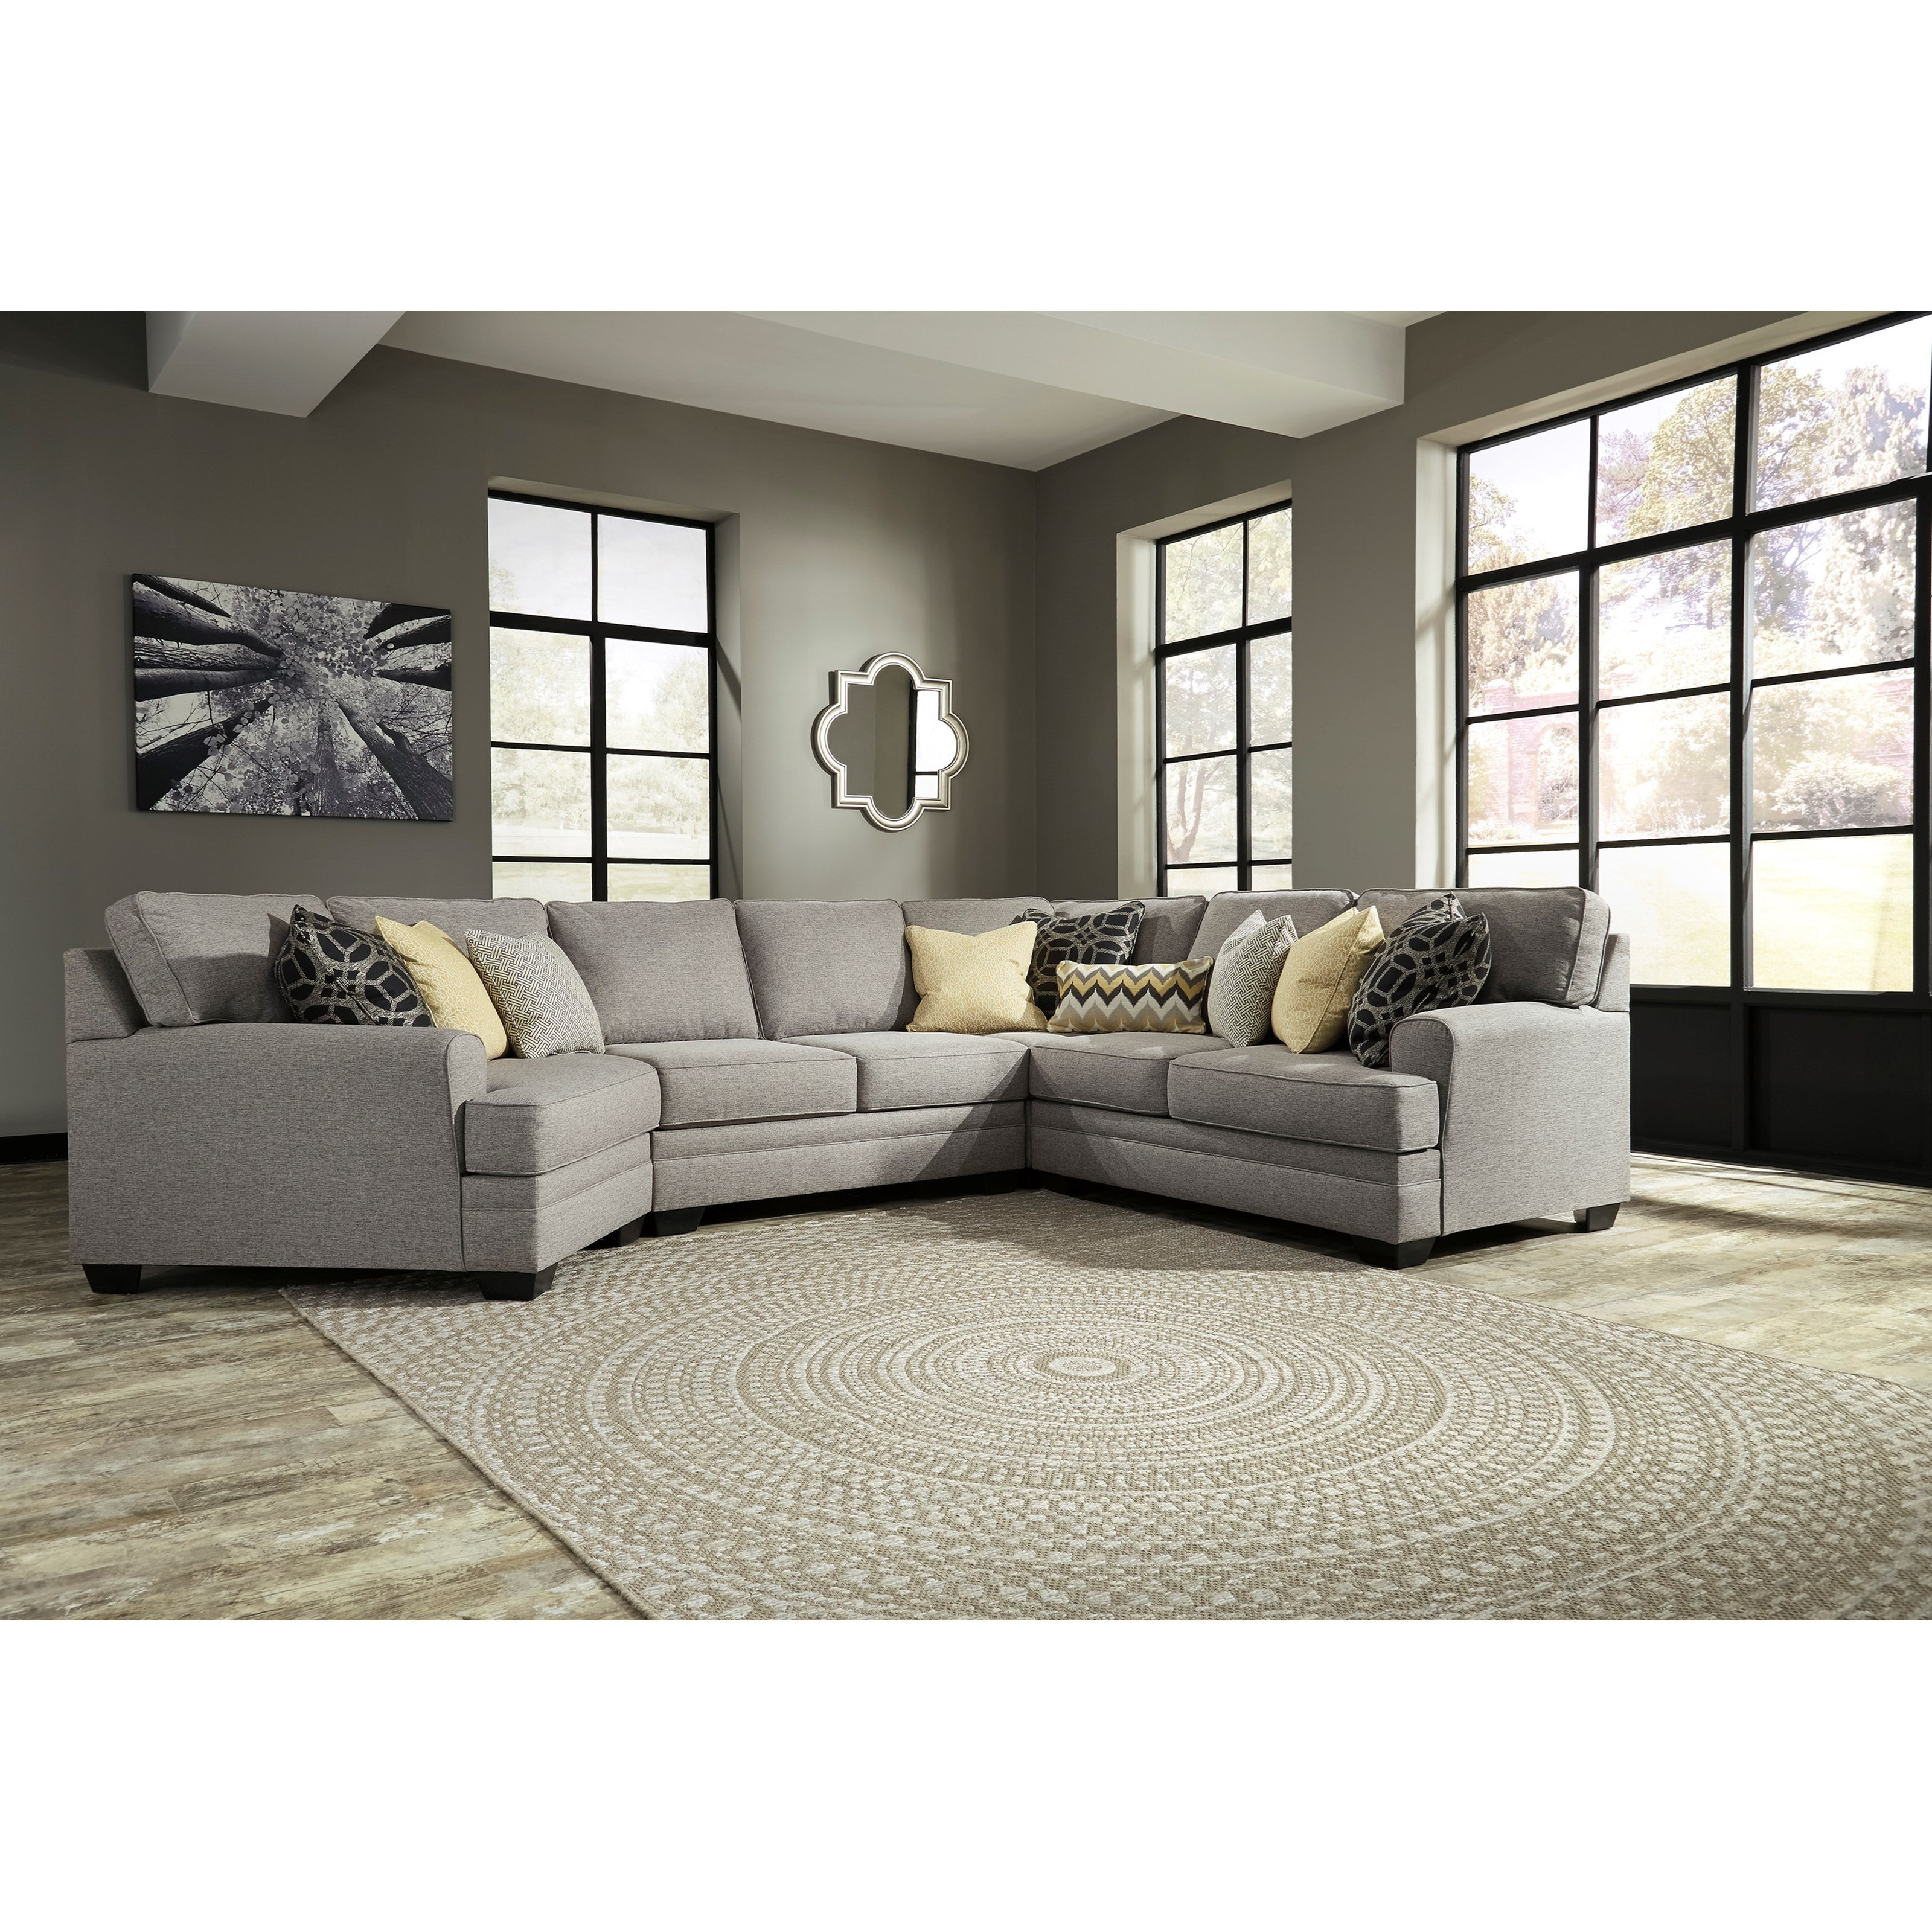 Benchcraft Cresson Contemporary 4 Piece Sectional With Cuddler